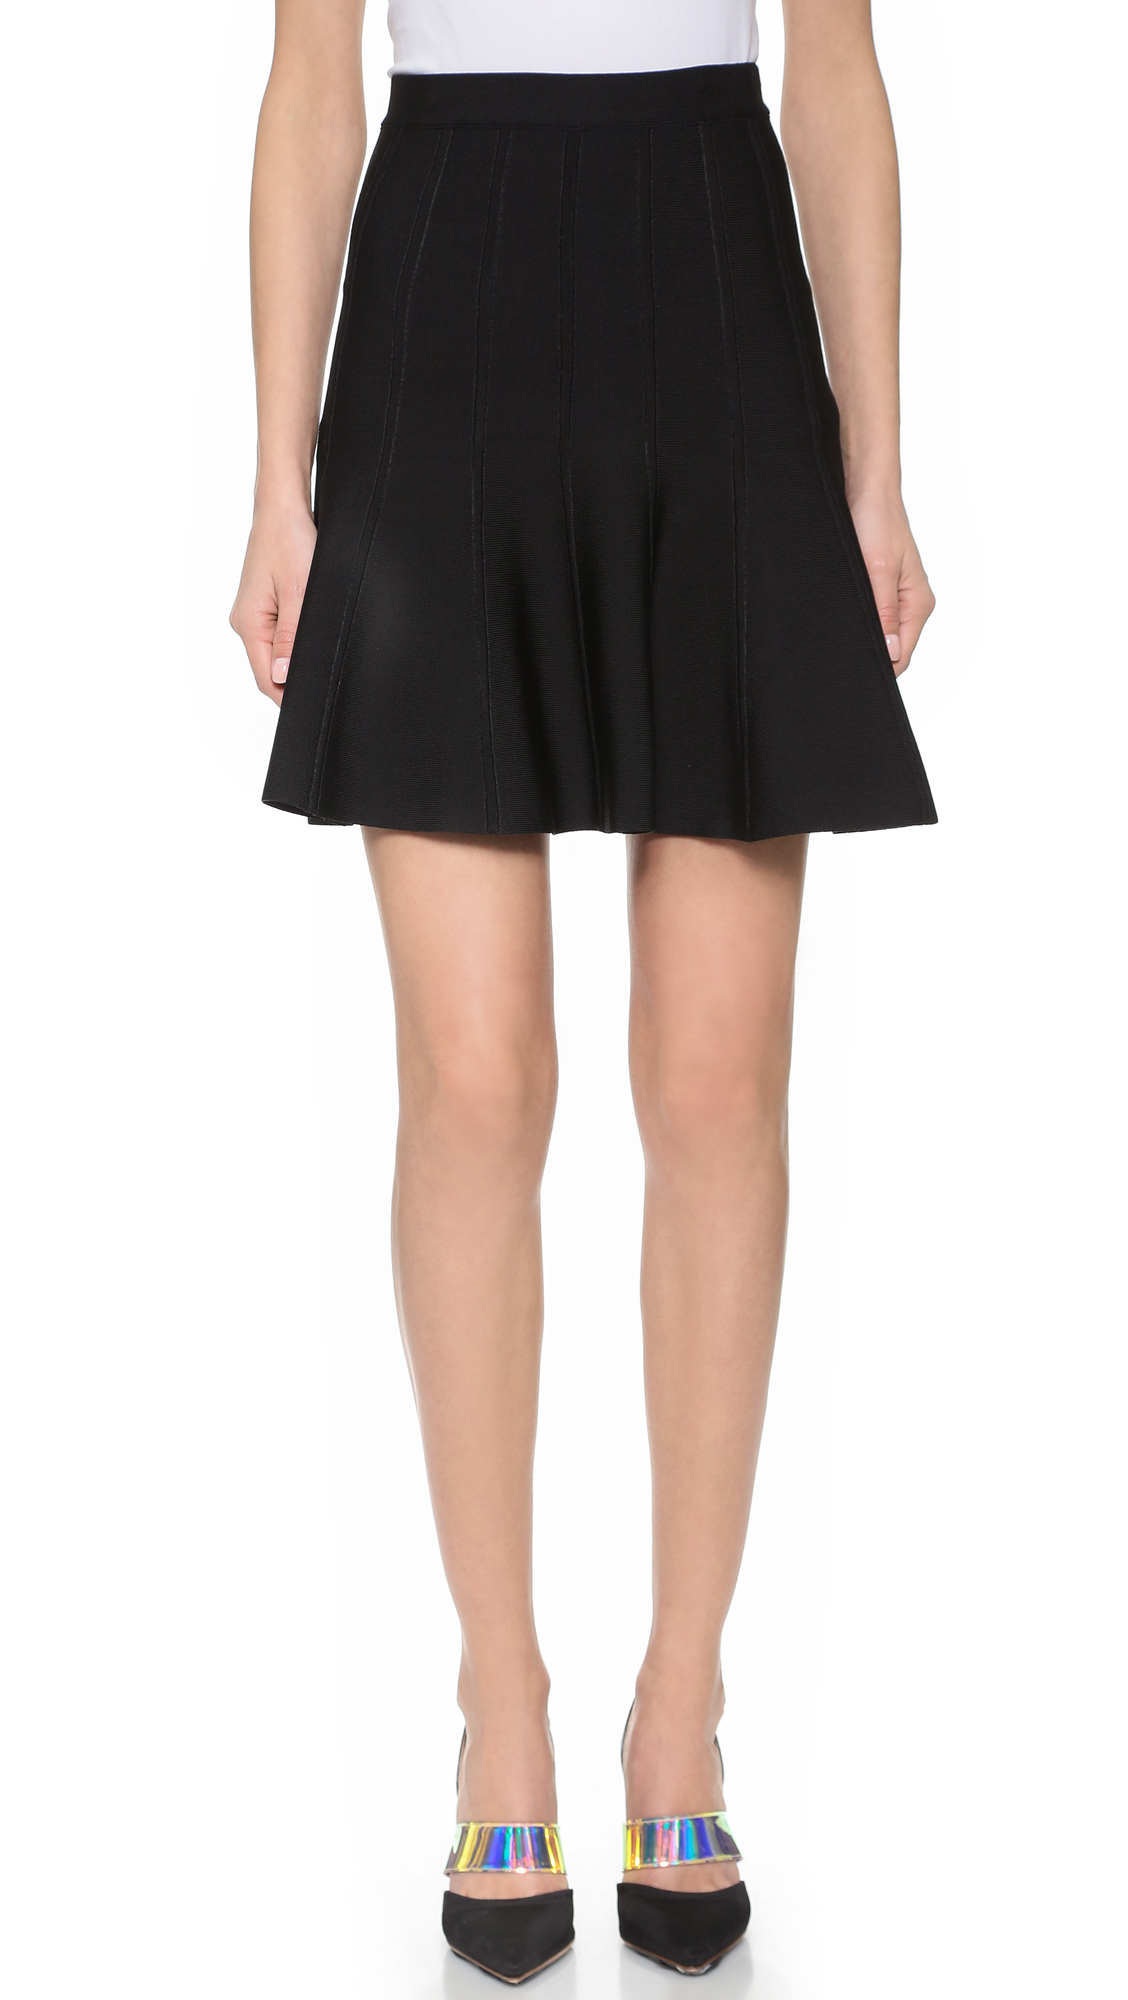 Herve Leger Sabine Skirt - Black